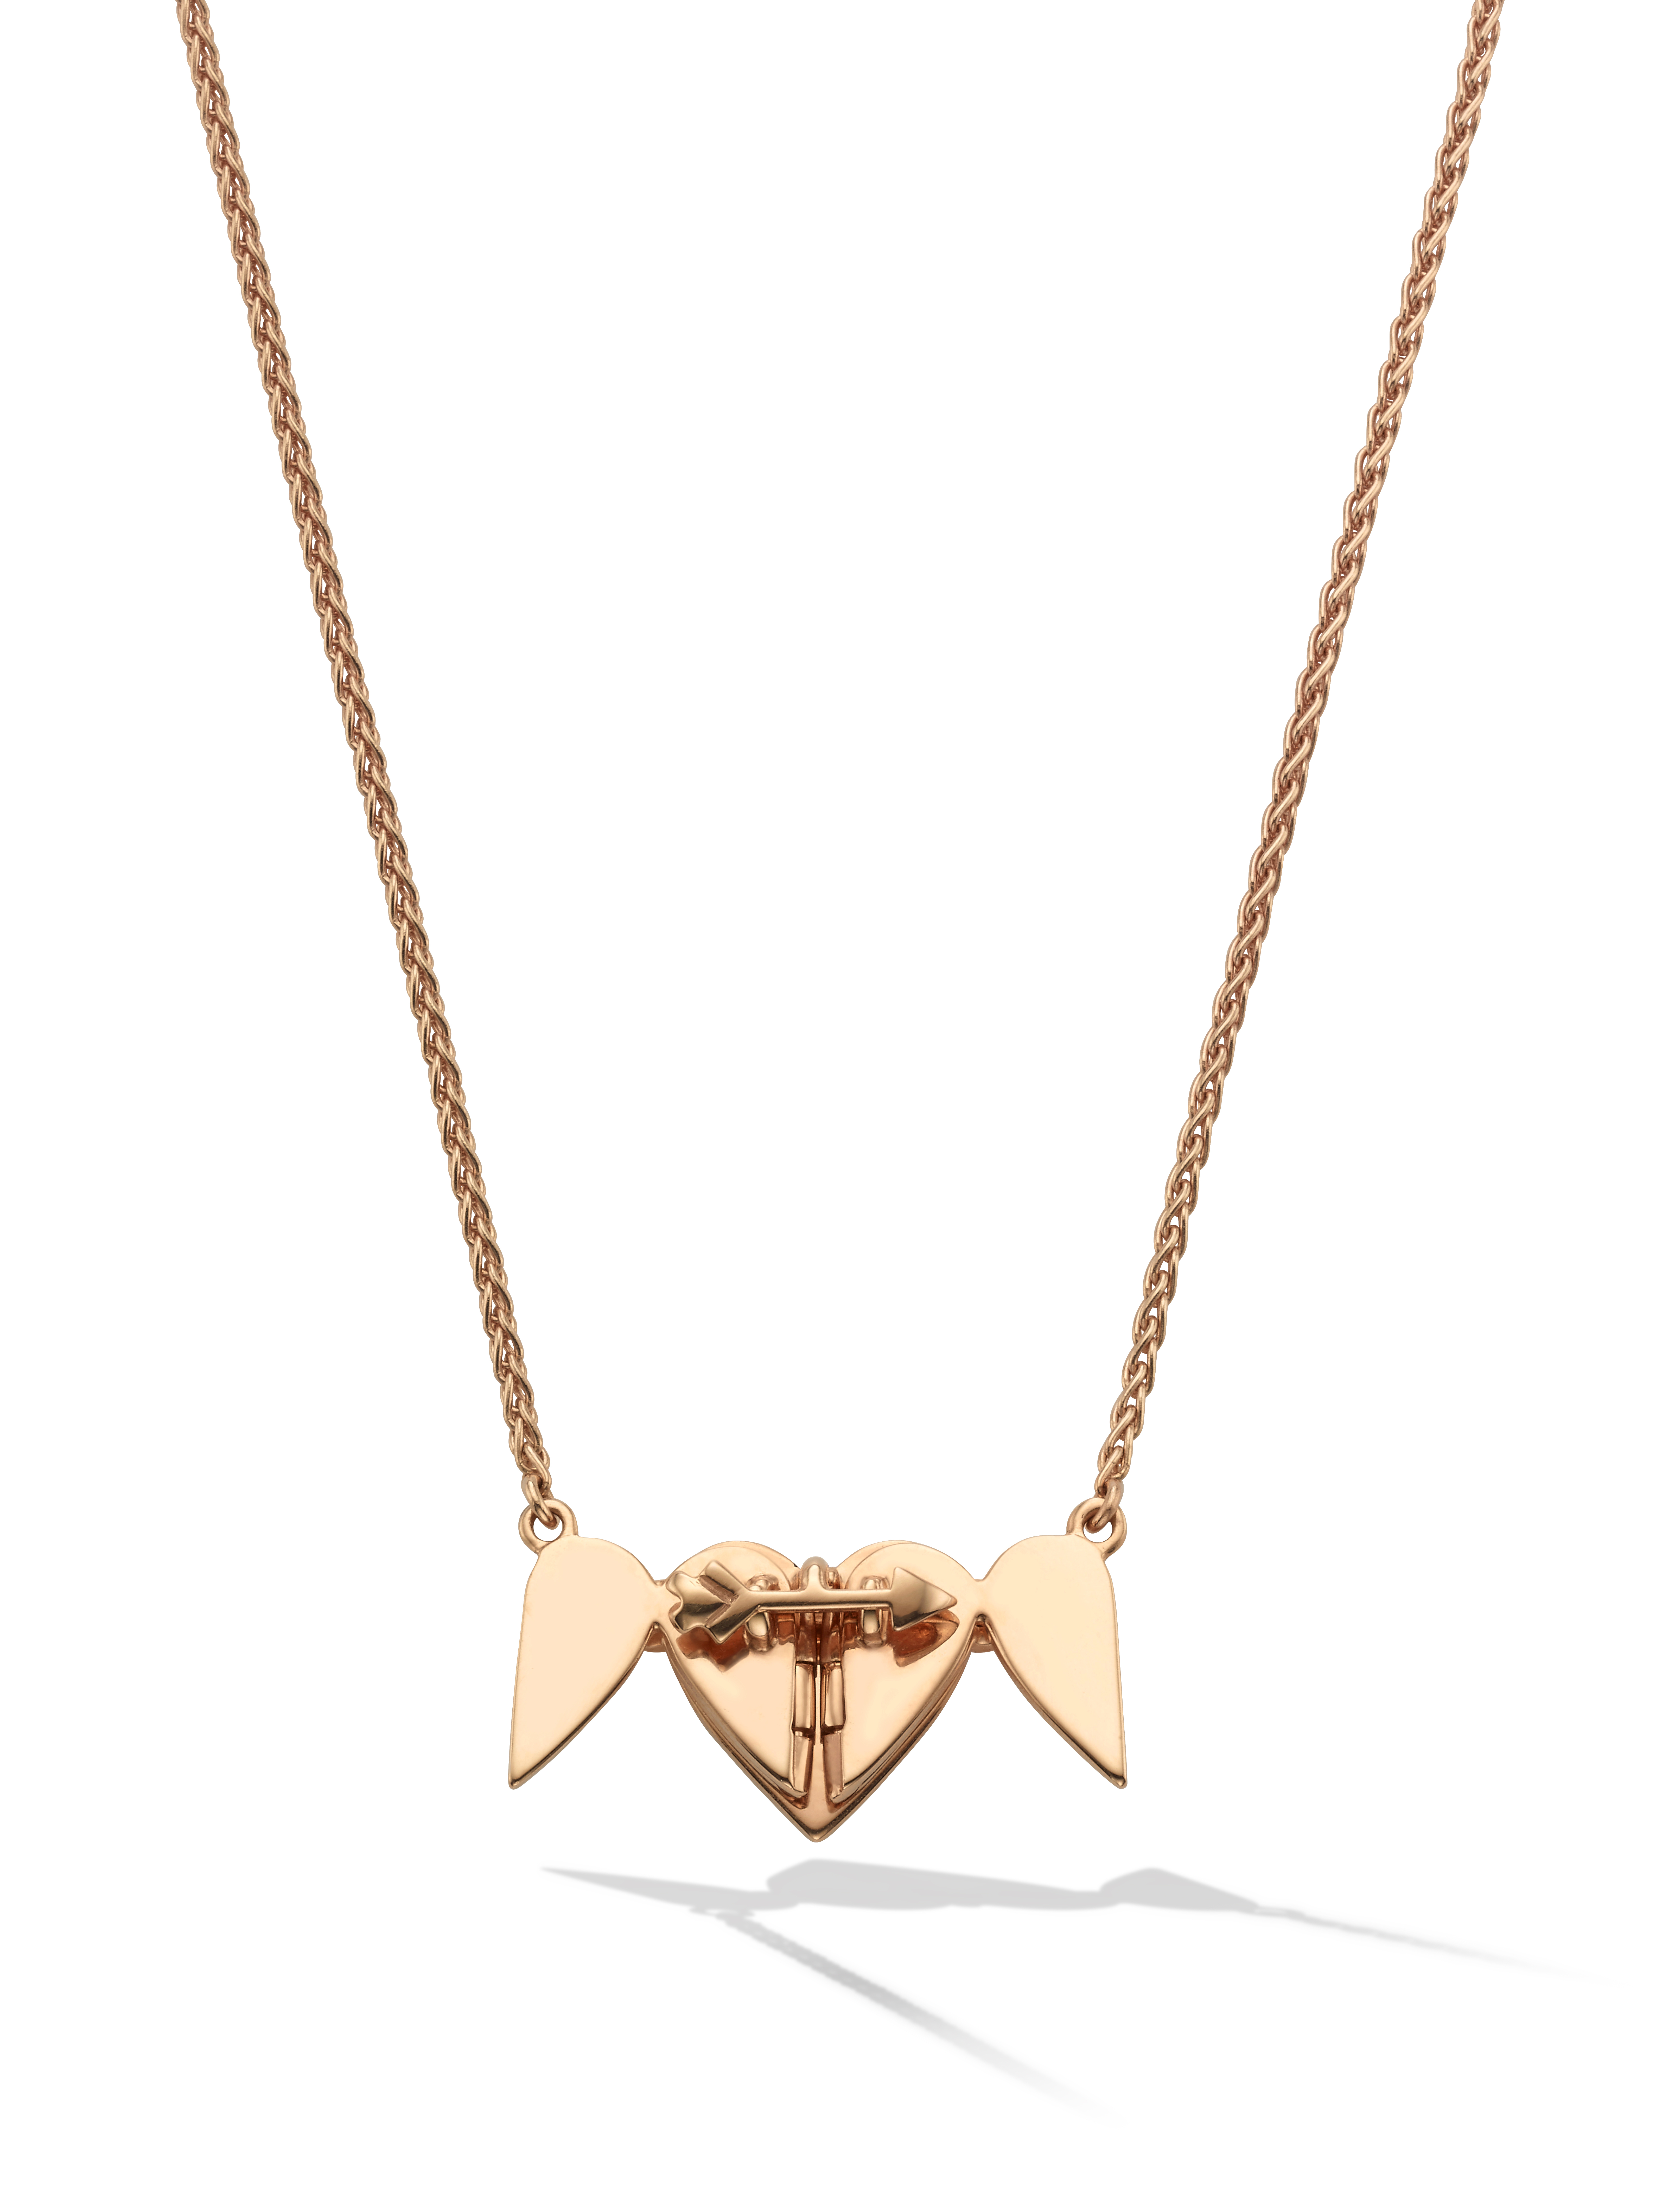 Endless Necklace In Rose Gold, 5 Hearts Inside Most Recent Asymmetrical Heart Necklaces (View 8 of 25)